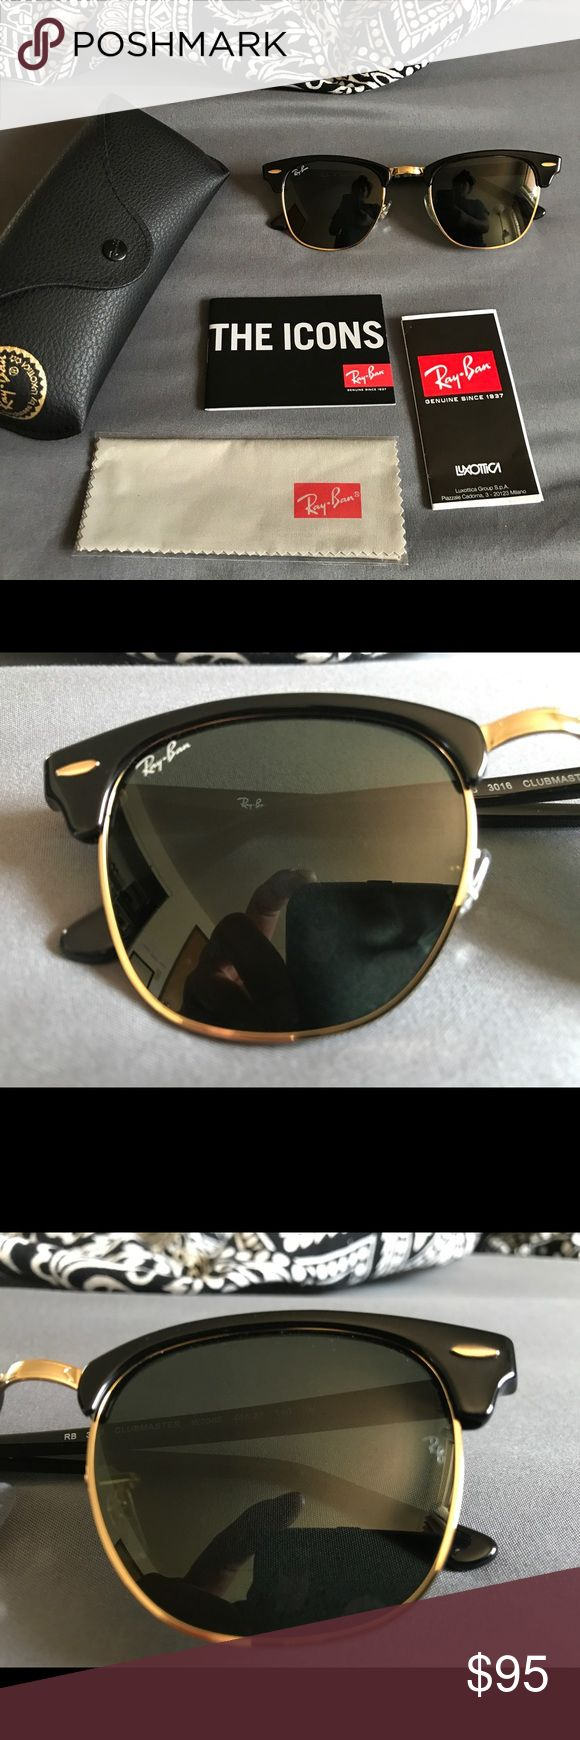 Ray-Ban Clubmaster New | Unused | 49 mm | Bought this at a Navy Exchange Store (pic of Receipt included) | Always loved the Clubmaster but should've went with a 51 mm for my face shape | Ray-Ban Accessories Sunglasses